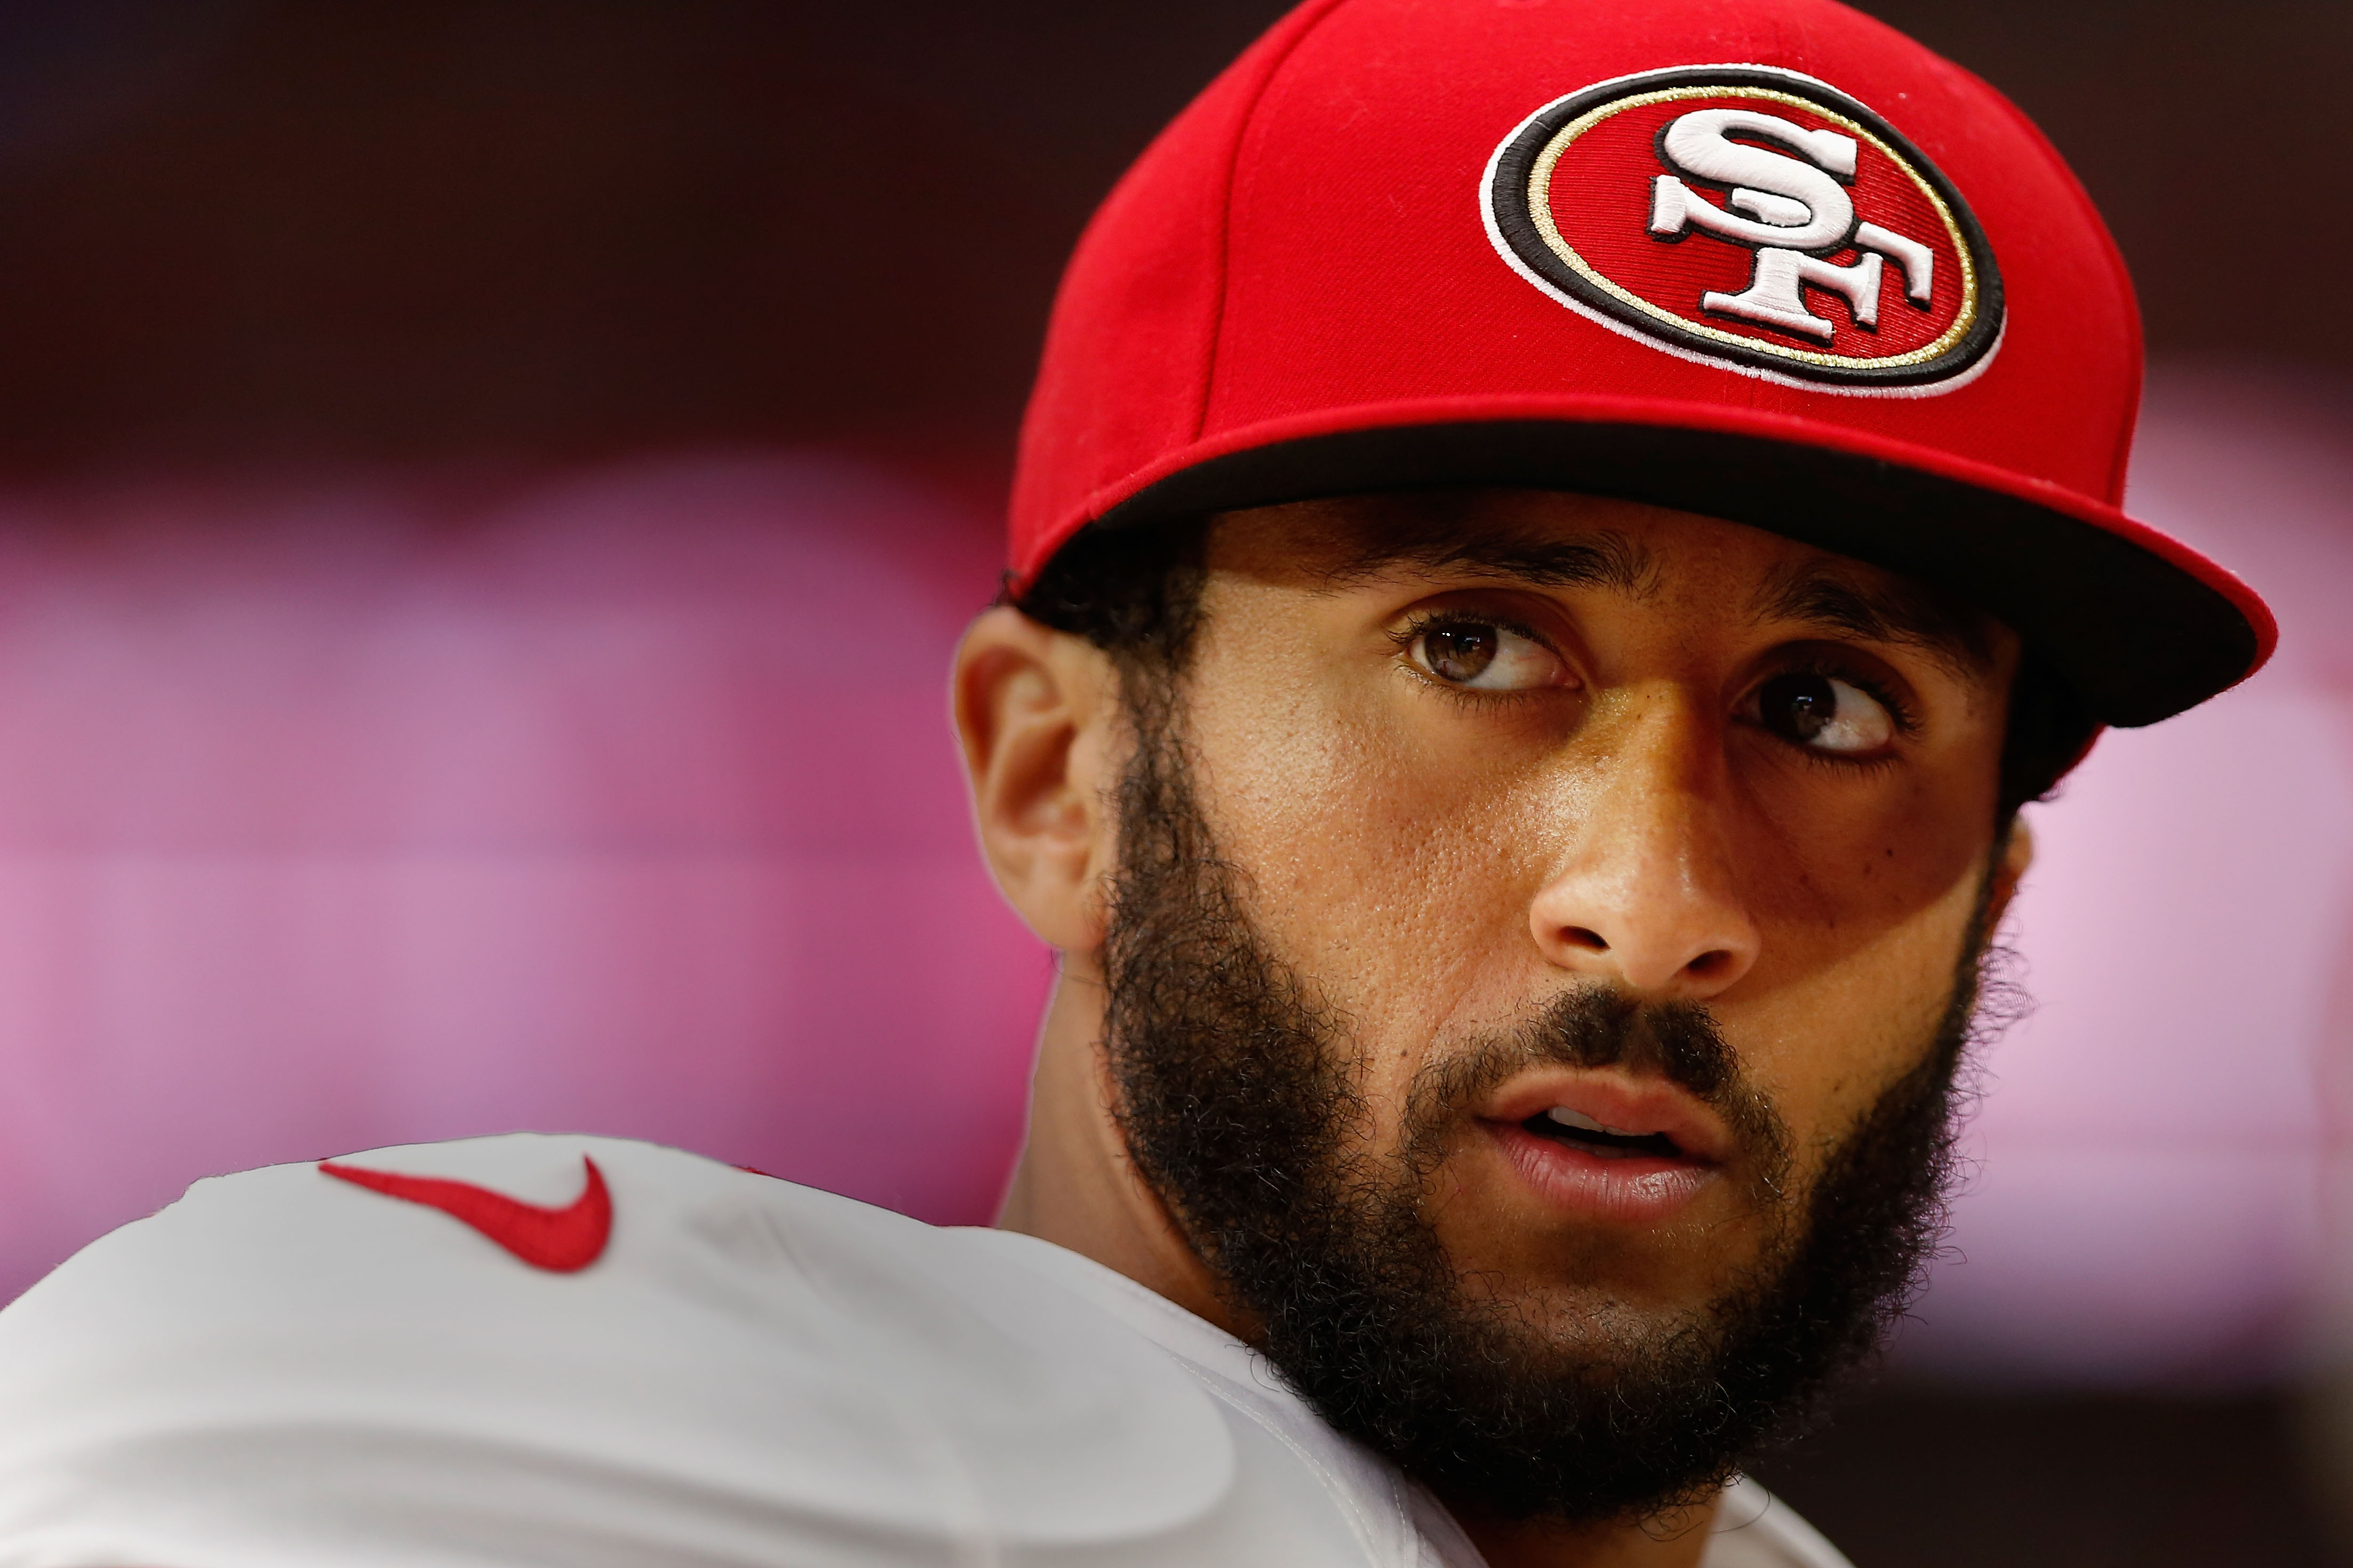 Quarterback Colin Kaepernick #7 of the San Francisco 49ers watches from the sidelines during the NFL game against the Arizona Cardinals at the University of Phoenix Stadium on Sept. 27, 2015 in Glendale, Arizona.